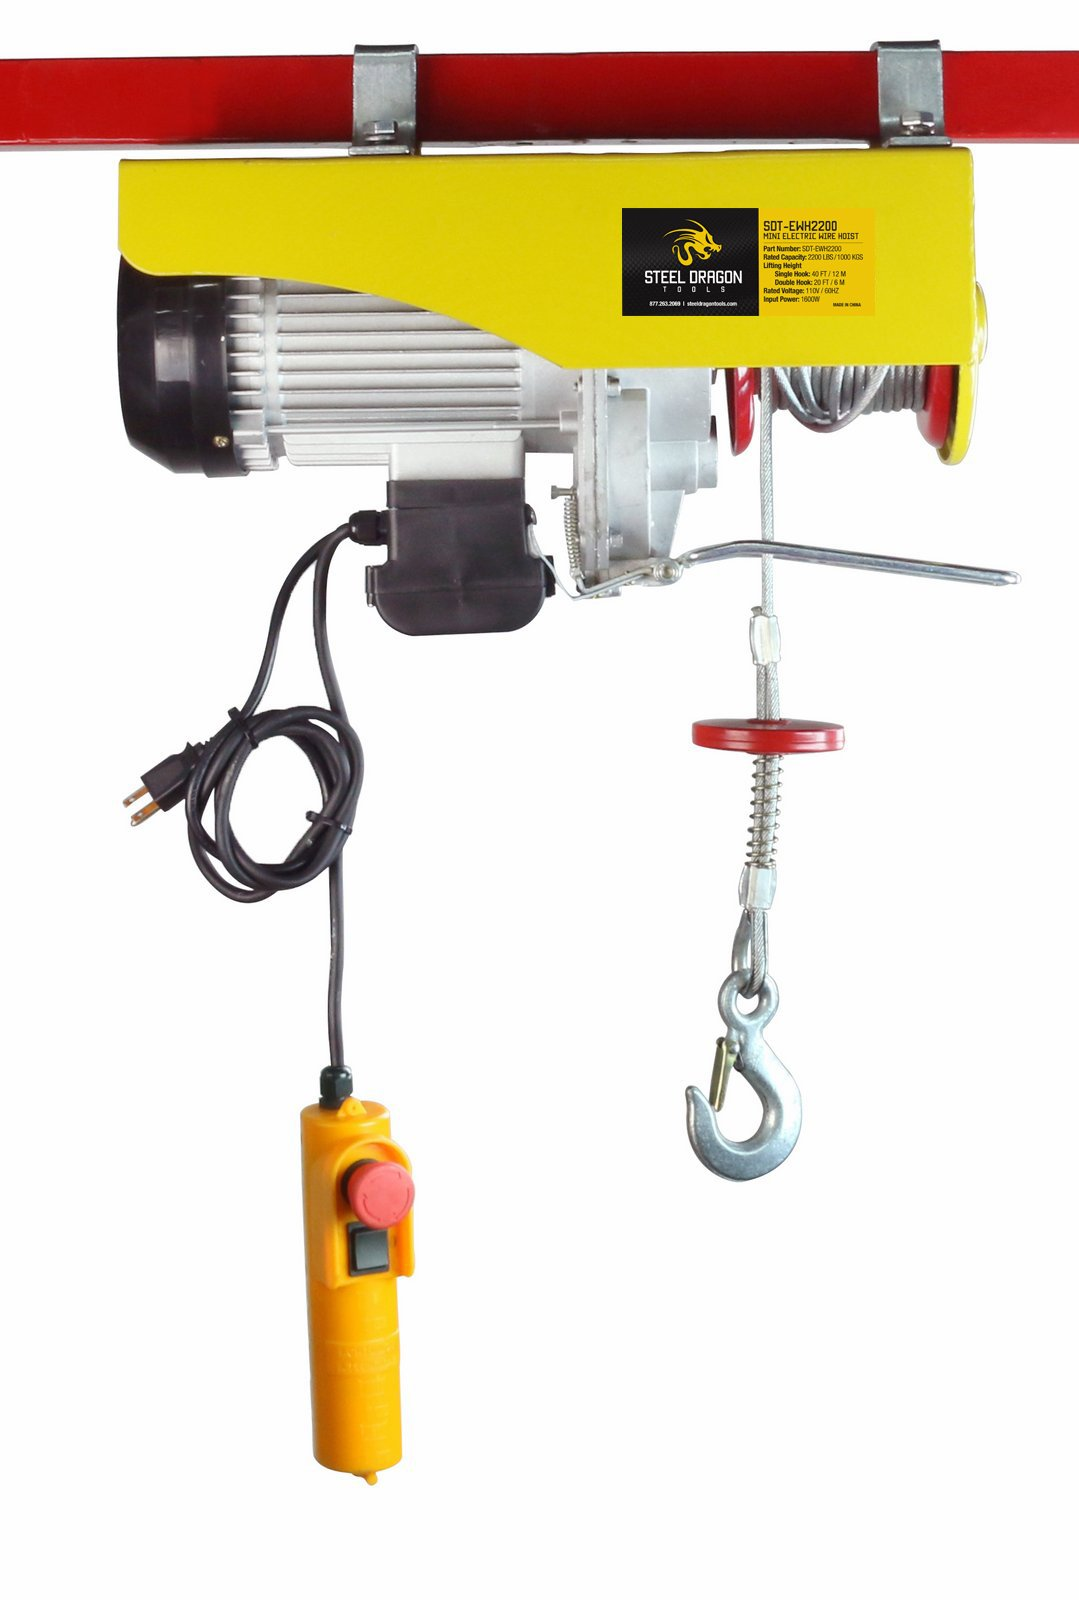 Steel Dragon Tools 2200 LBS Mini Electric Wire Cable Hoist Overhead Crane Lift with Remote Control